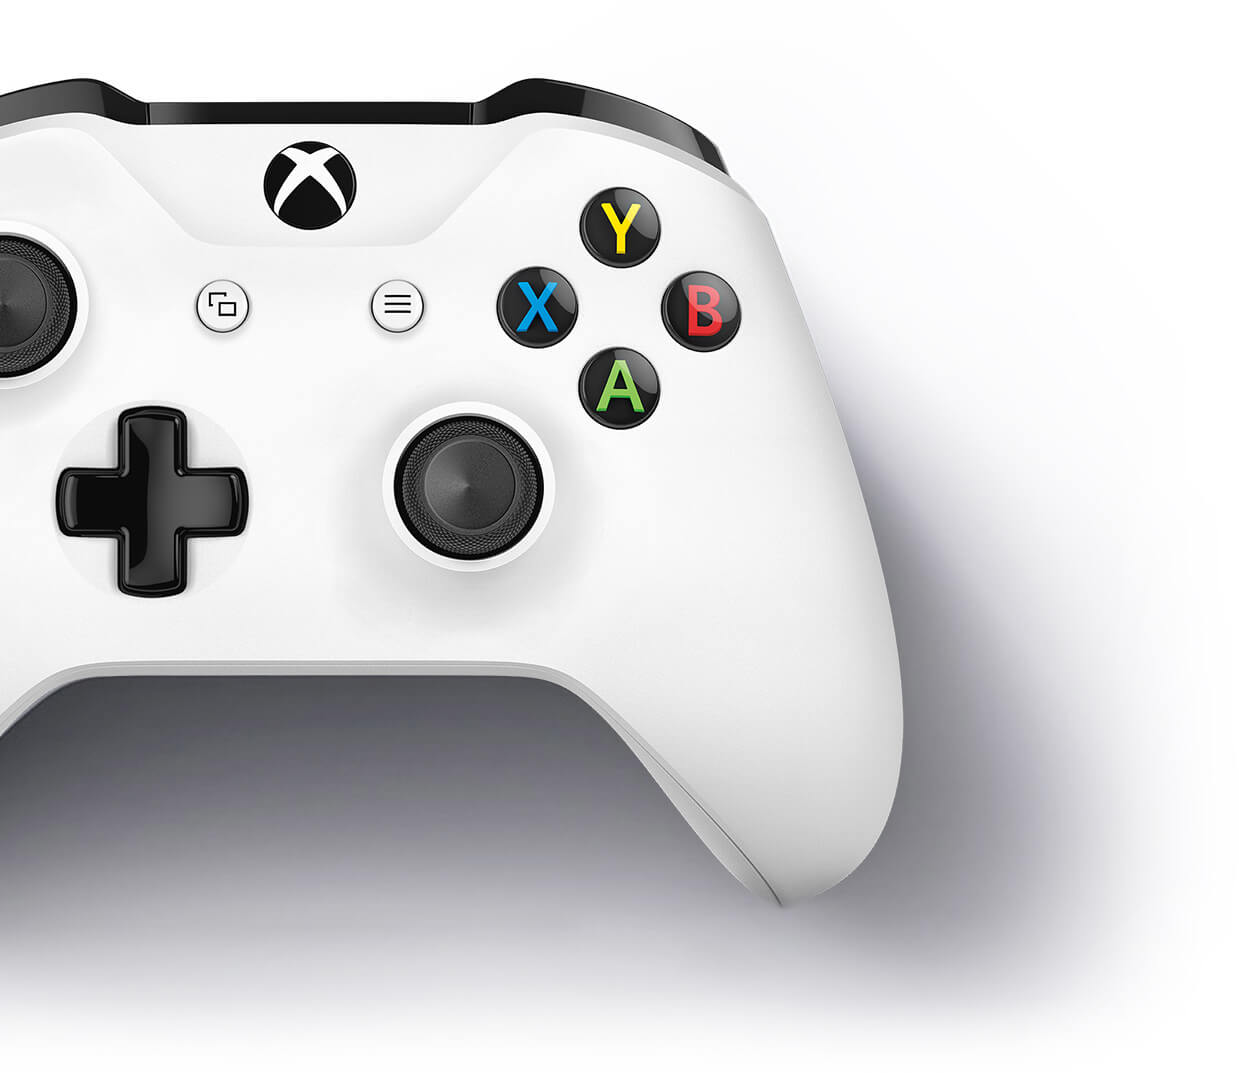 Xbox One games and accessories work together